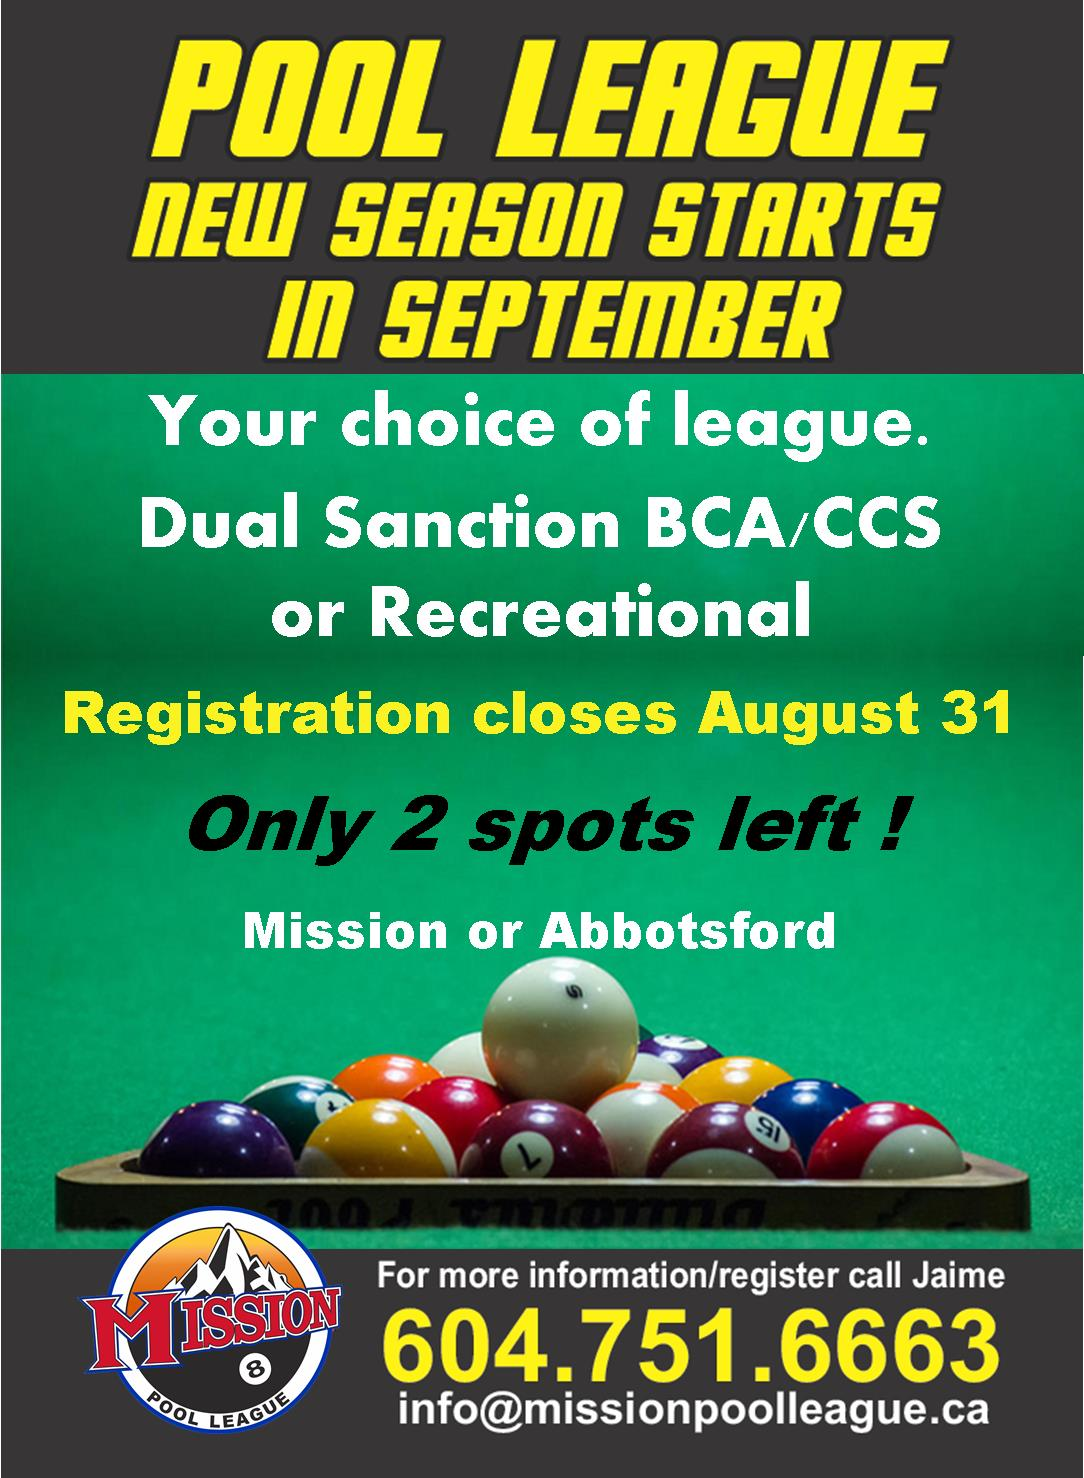 Mission Pool League Share, Share, Share!!!! - Mission Pool